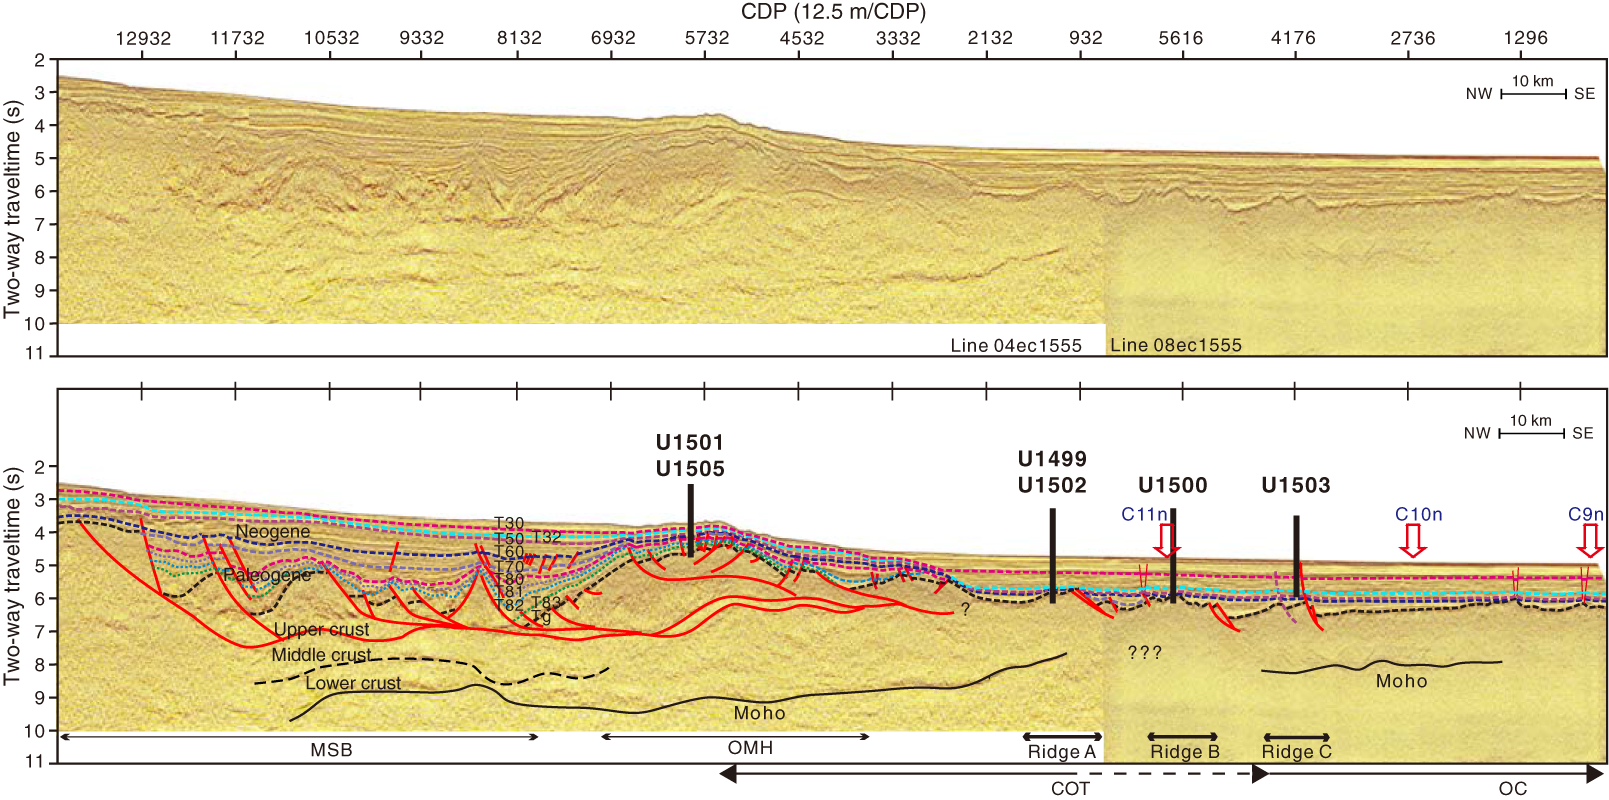 IODP Publications • Volume 367/368 expedition reports • Site U1502